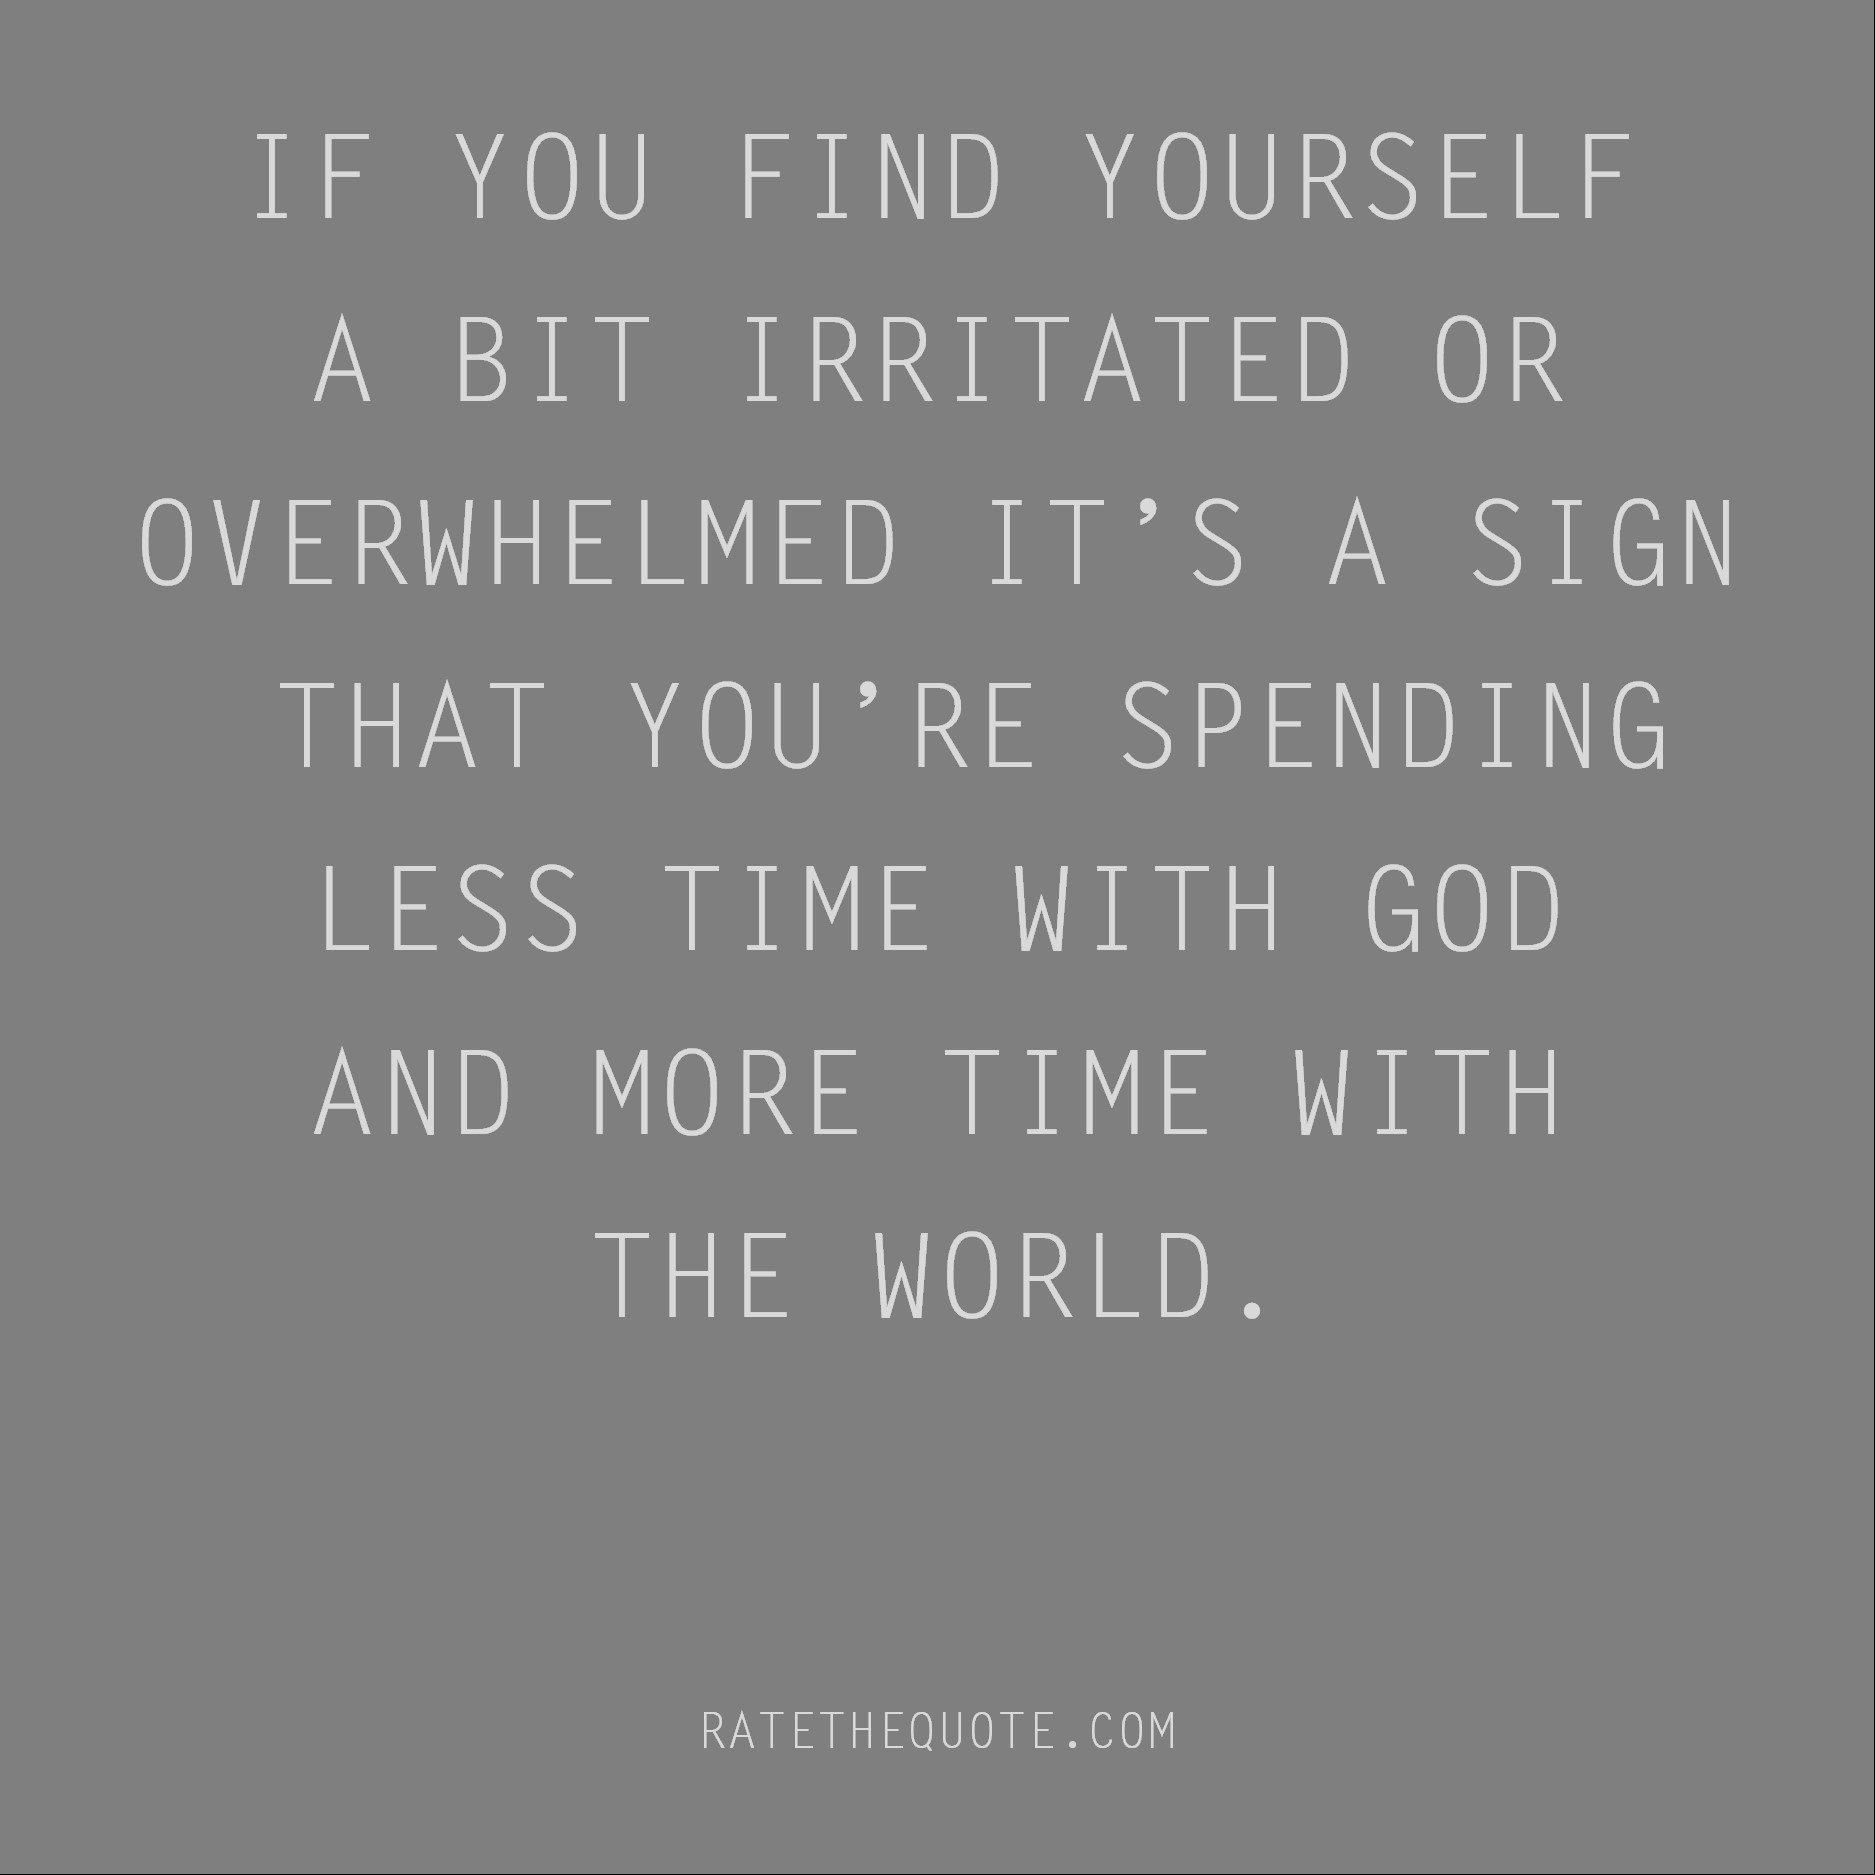 IF YOU FIND YOURSELF A BIT IRRITATED OR OVERWHELMED IT'S A SIGN THAT YOU'RE SPENDING LESS TIME WITH GOD AND MORE TIME WITH THE WORLD.